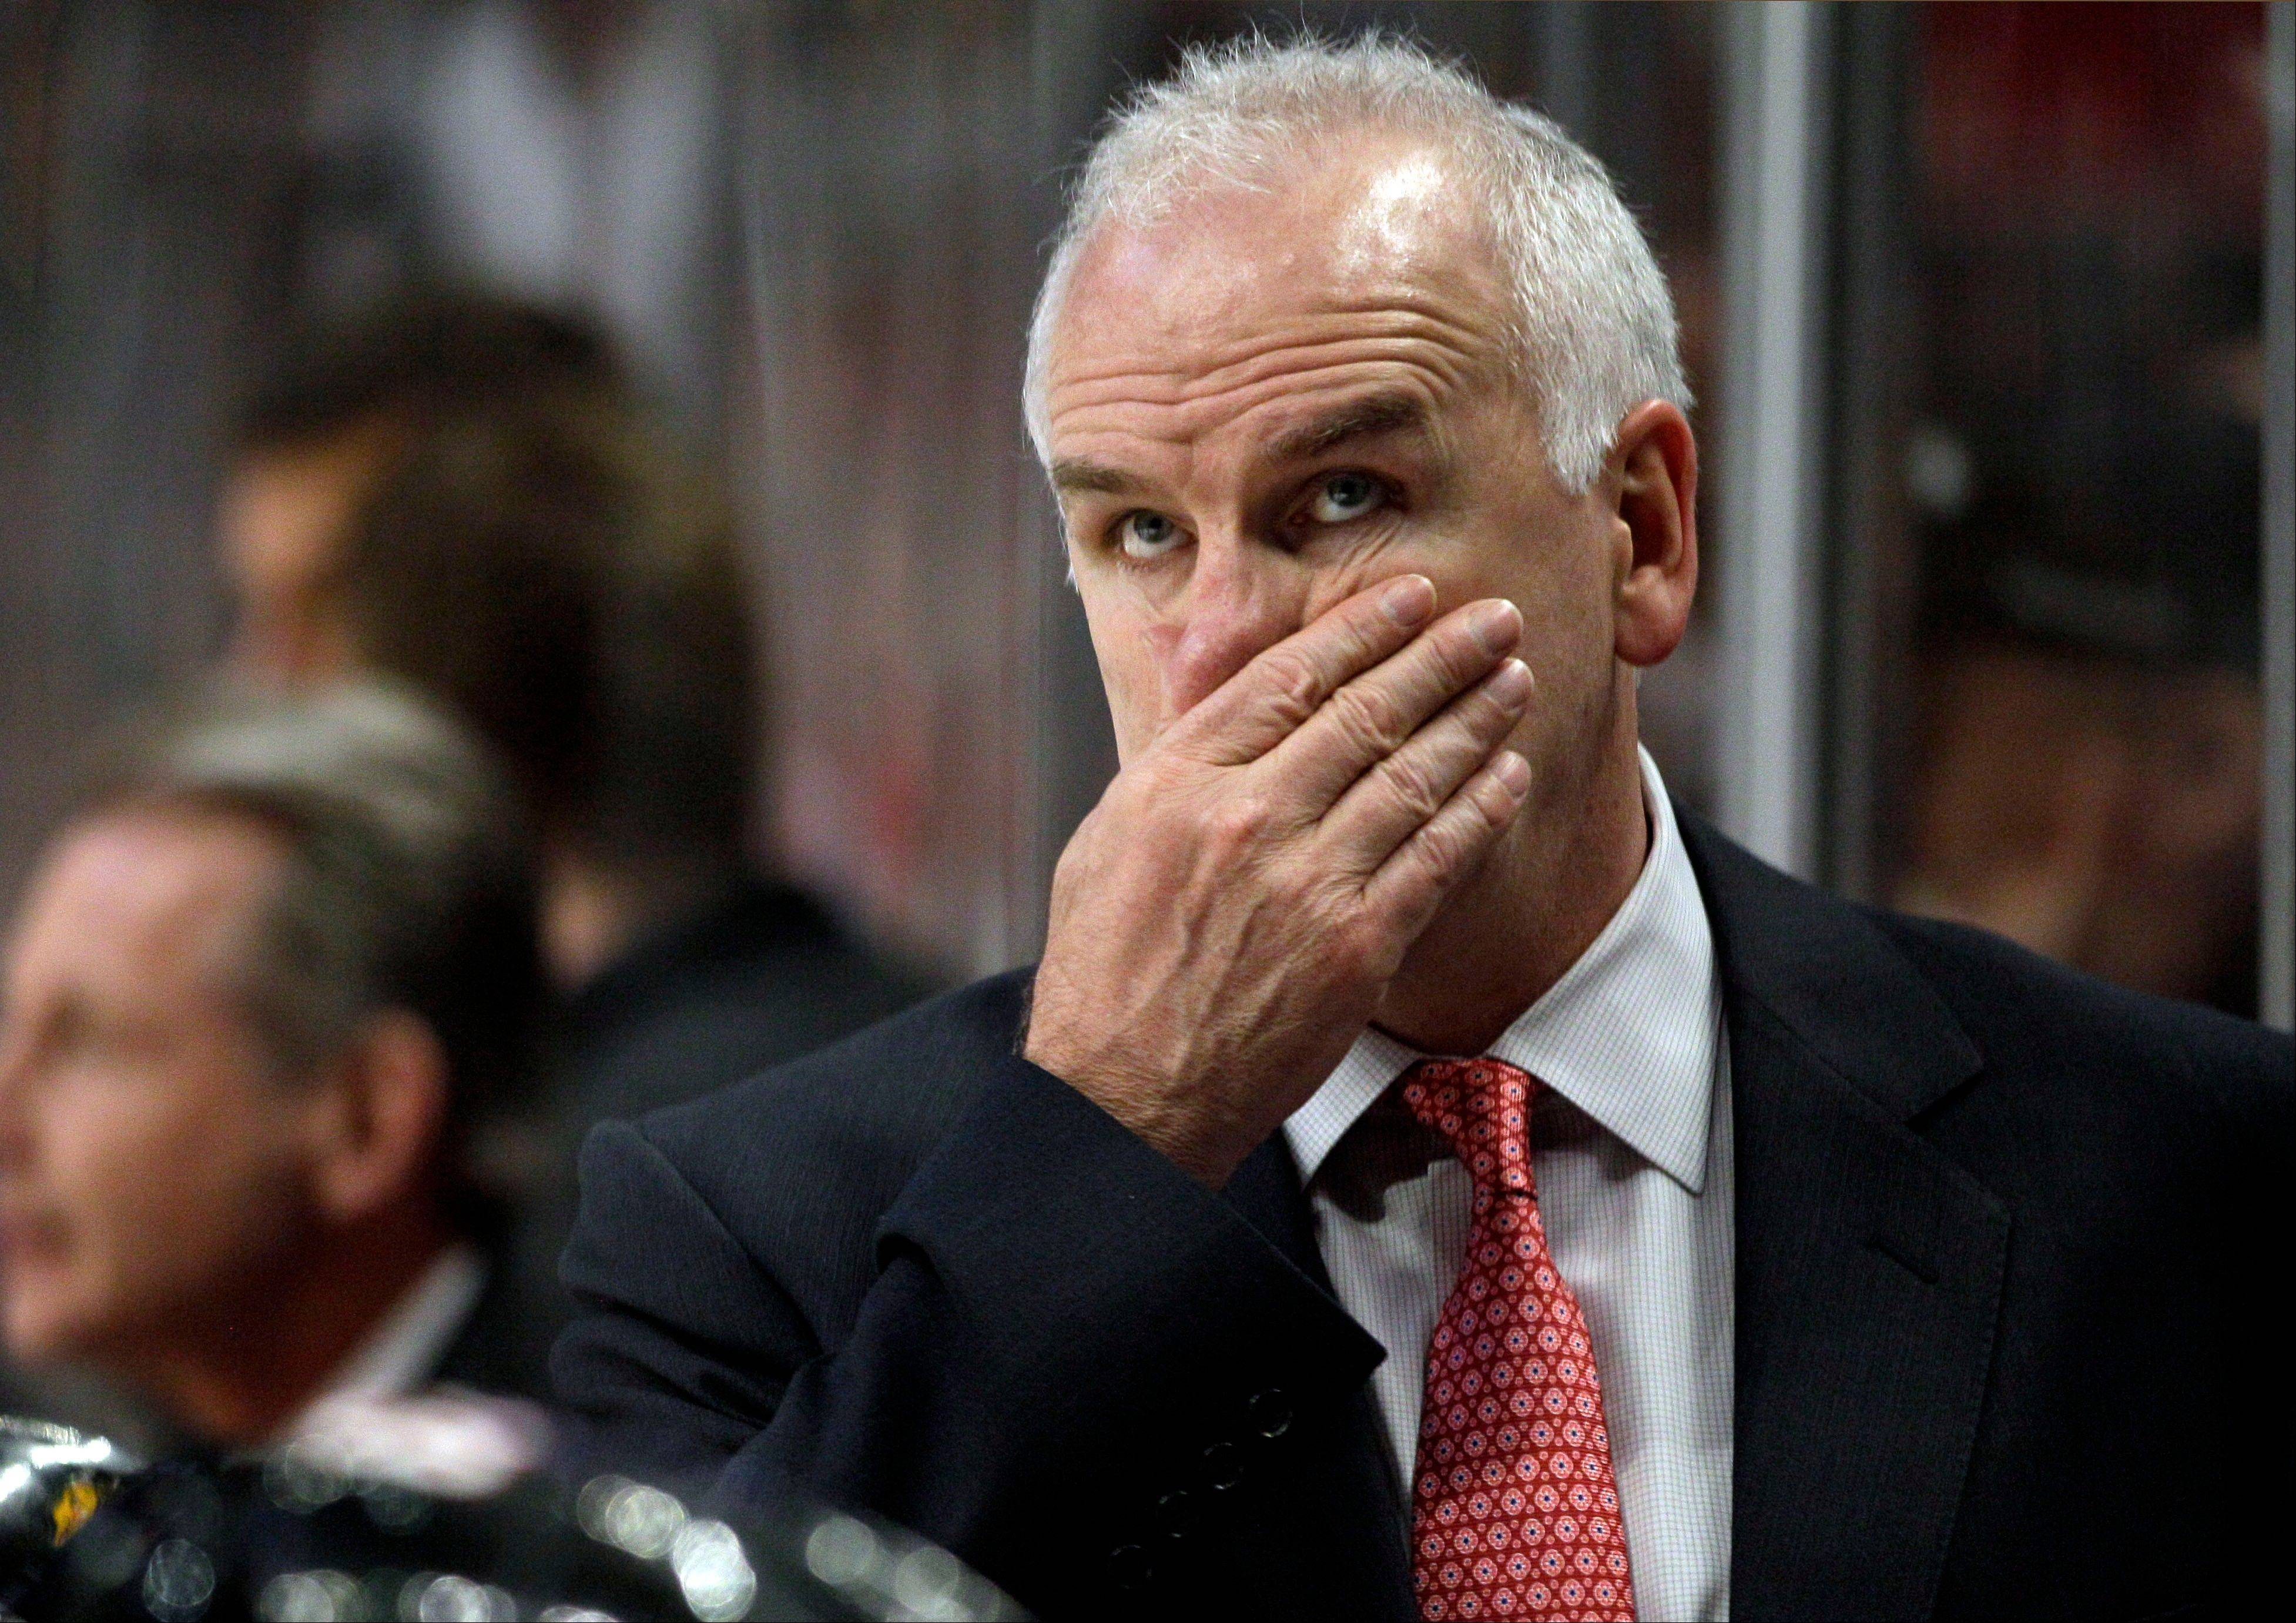 Blackhawks head coach Joel Quenneville was fined $10,000 by the NHL on Thursday for criticizing officials after Game 3.